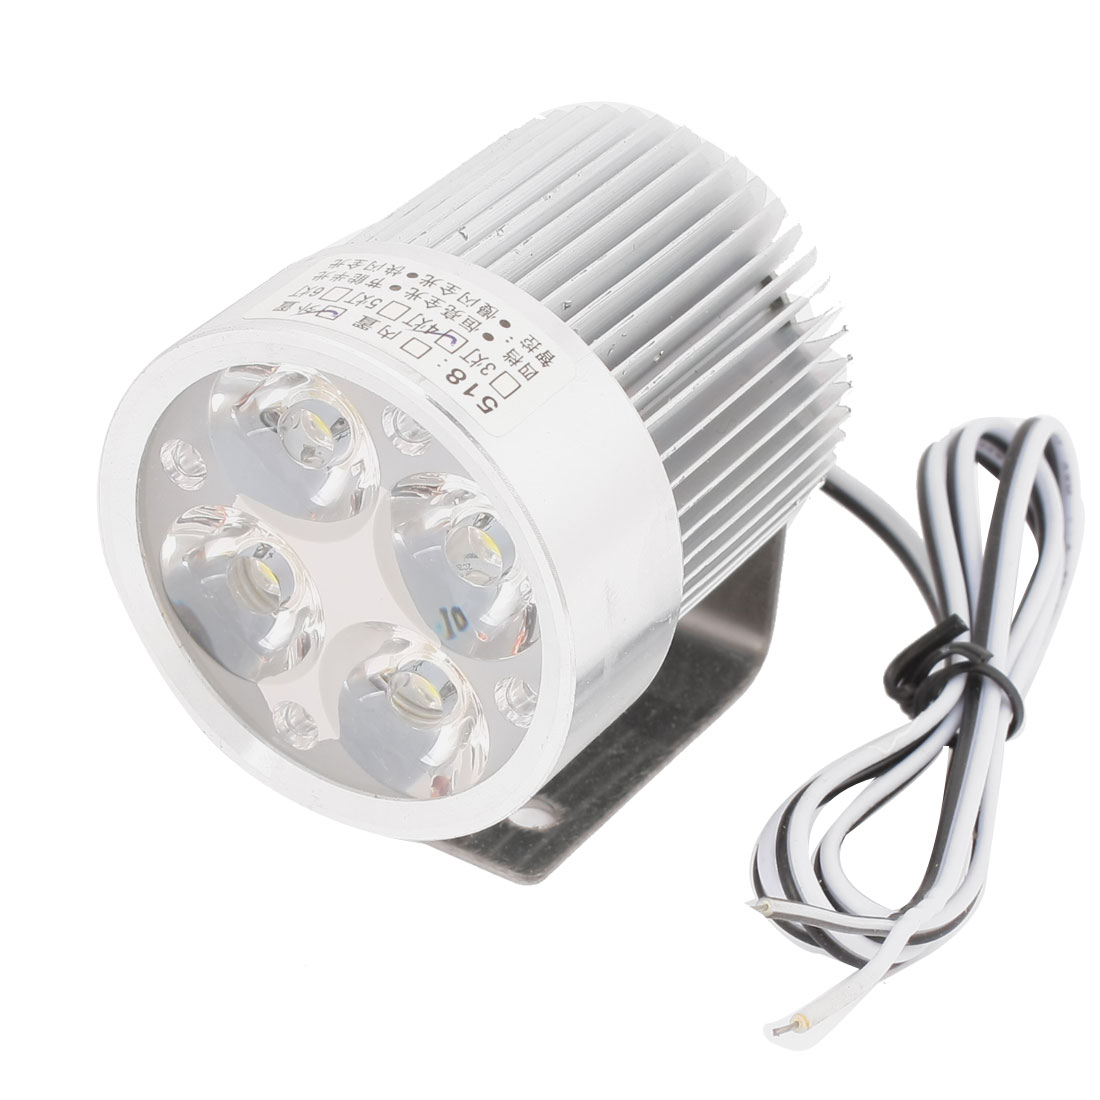 Motorcycle Silver Tone Metal Shell 4 White LED Decorative Spot Light Lamp 9V-85V